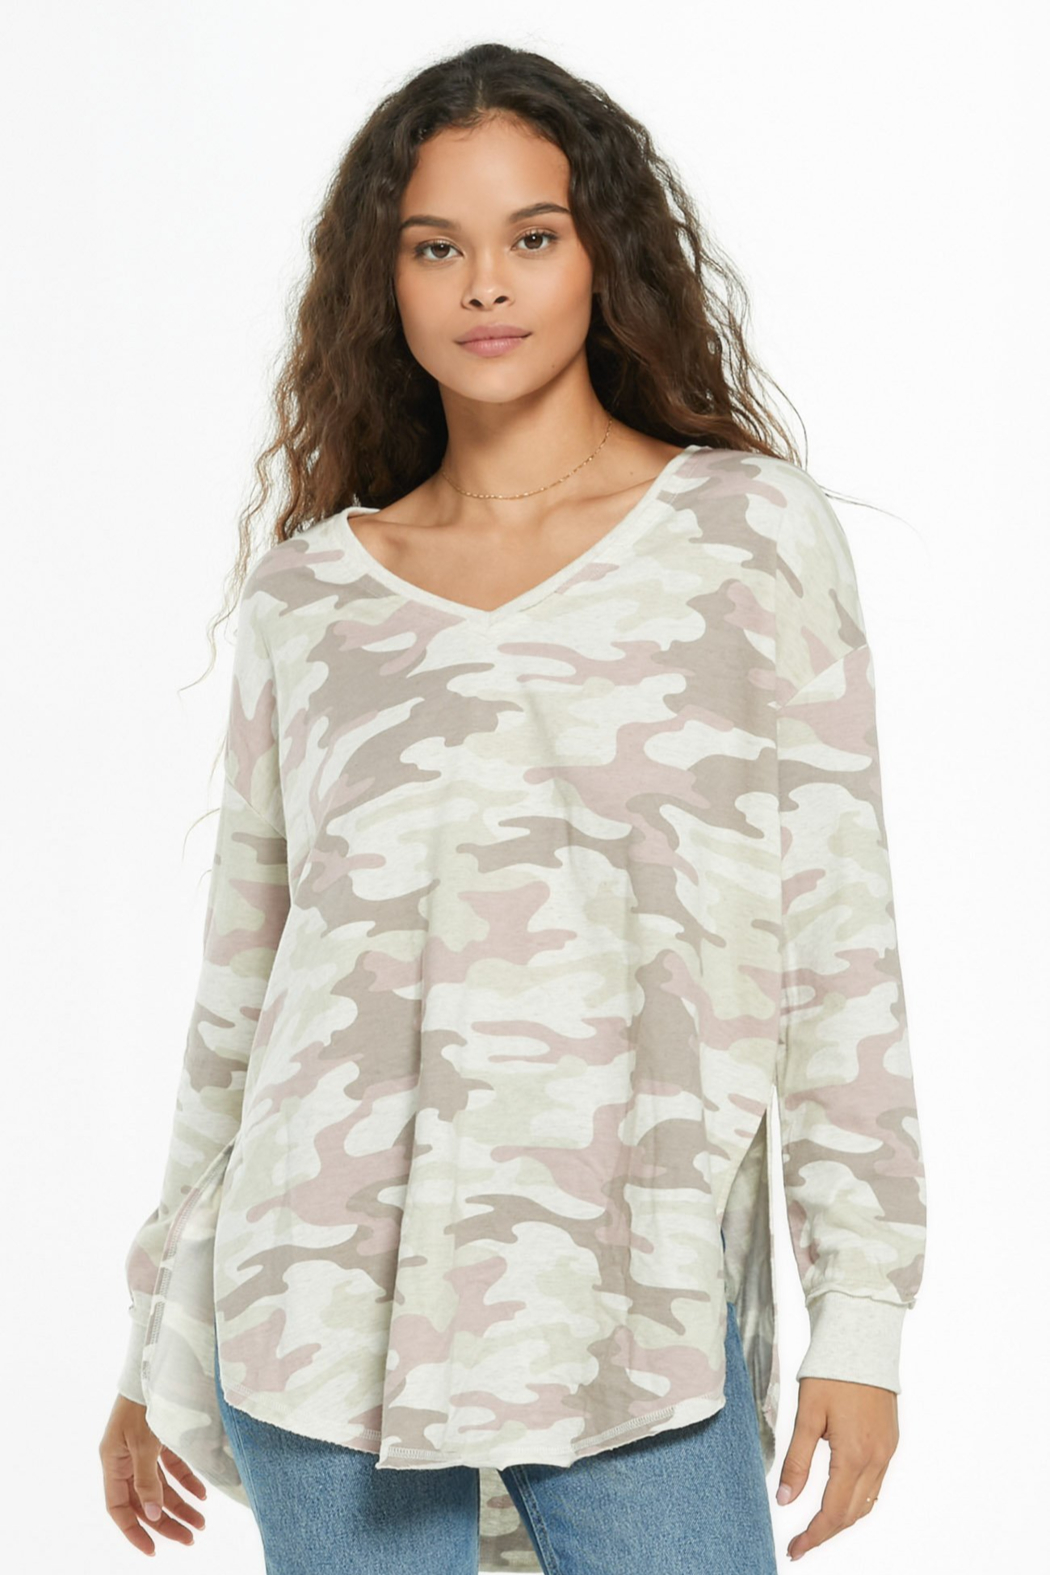 z supply Dusty Camo V-Neck Weekender - Main Image